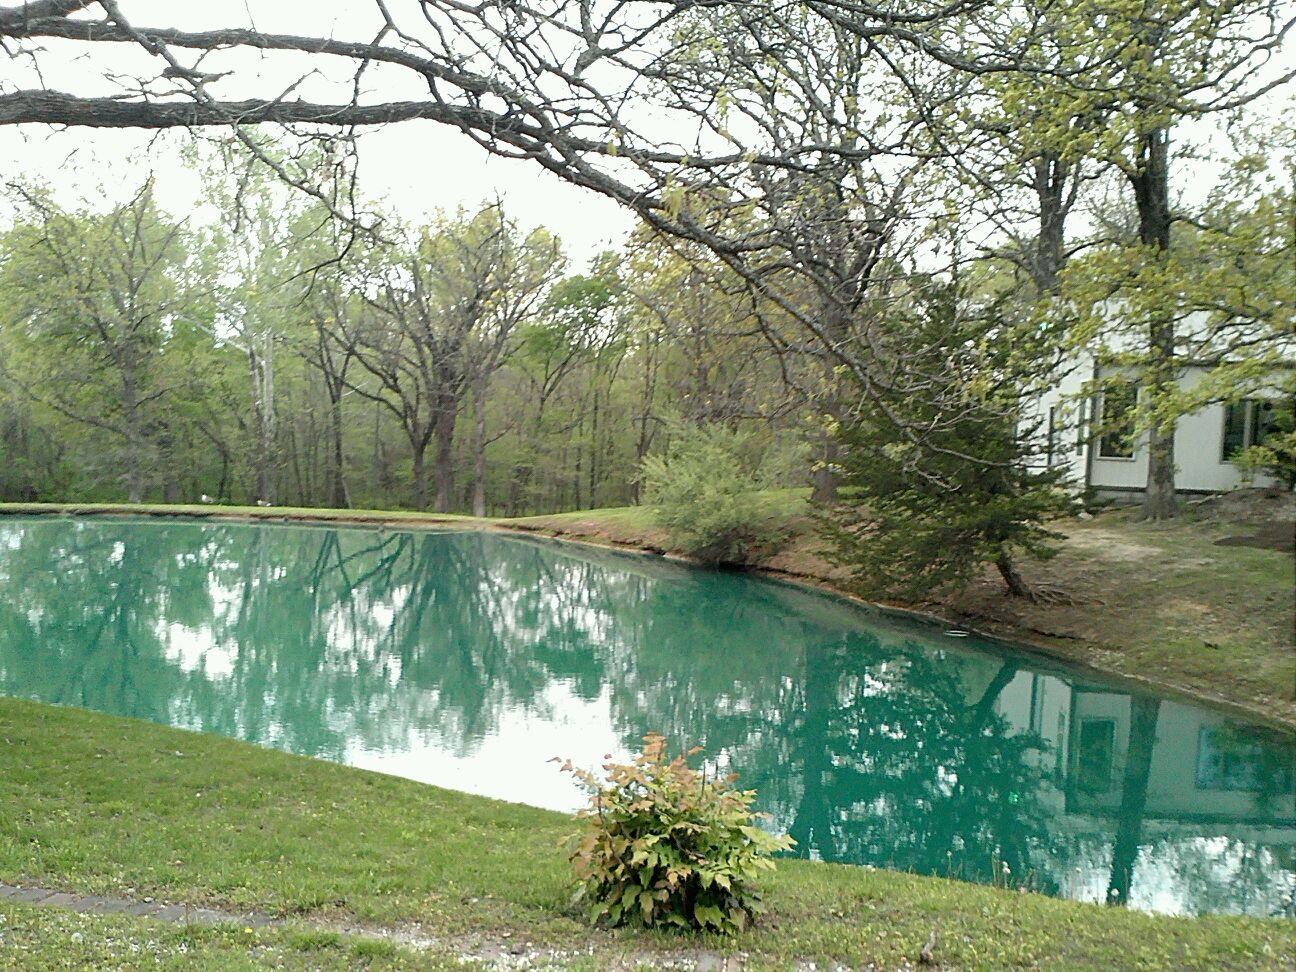 The pond on the property, a great photo opportunity.